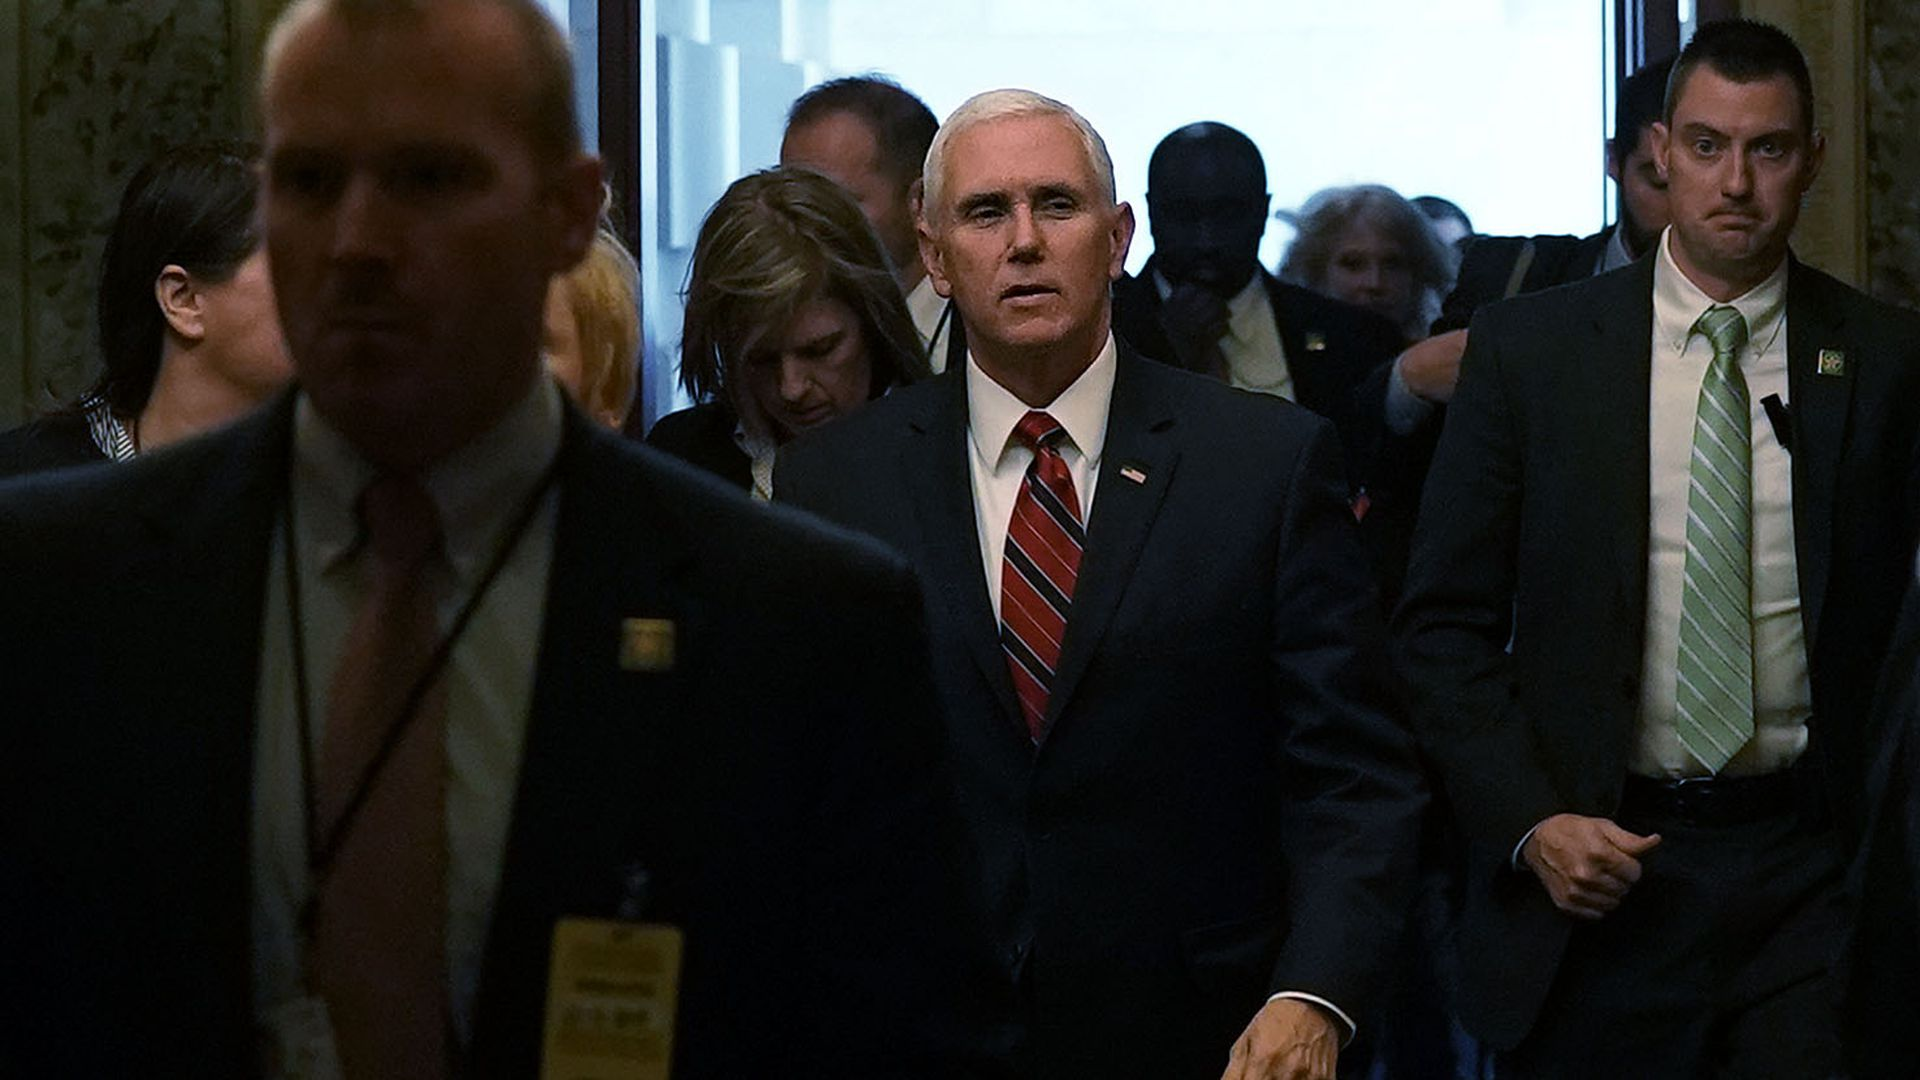 Vice President Mike Pence walks through a crowd of people at the Capitol